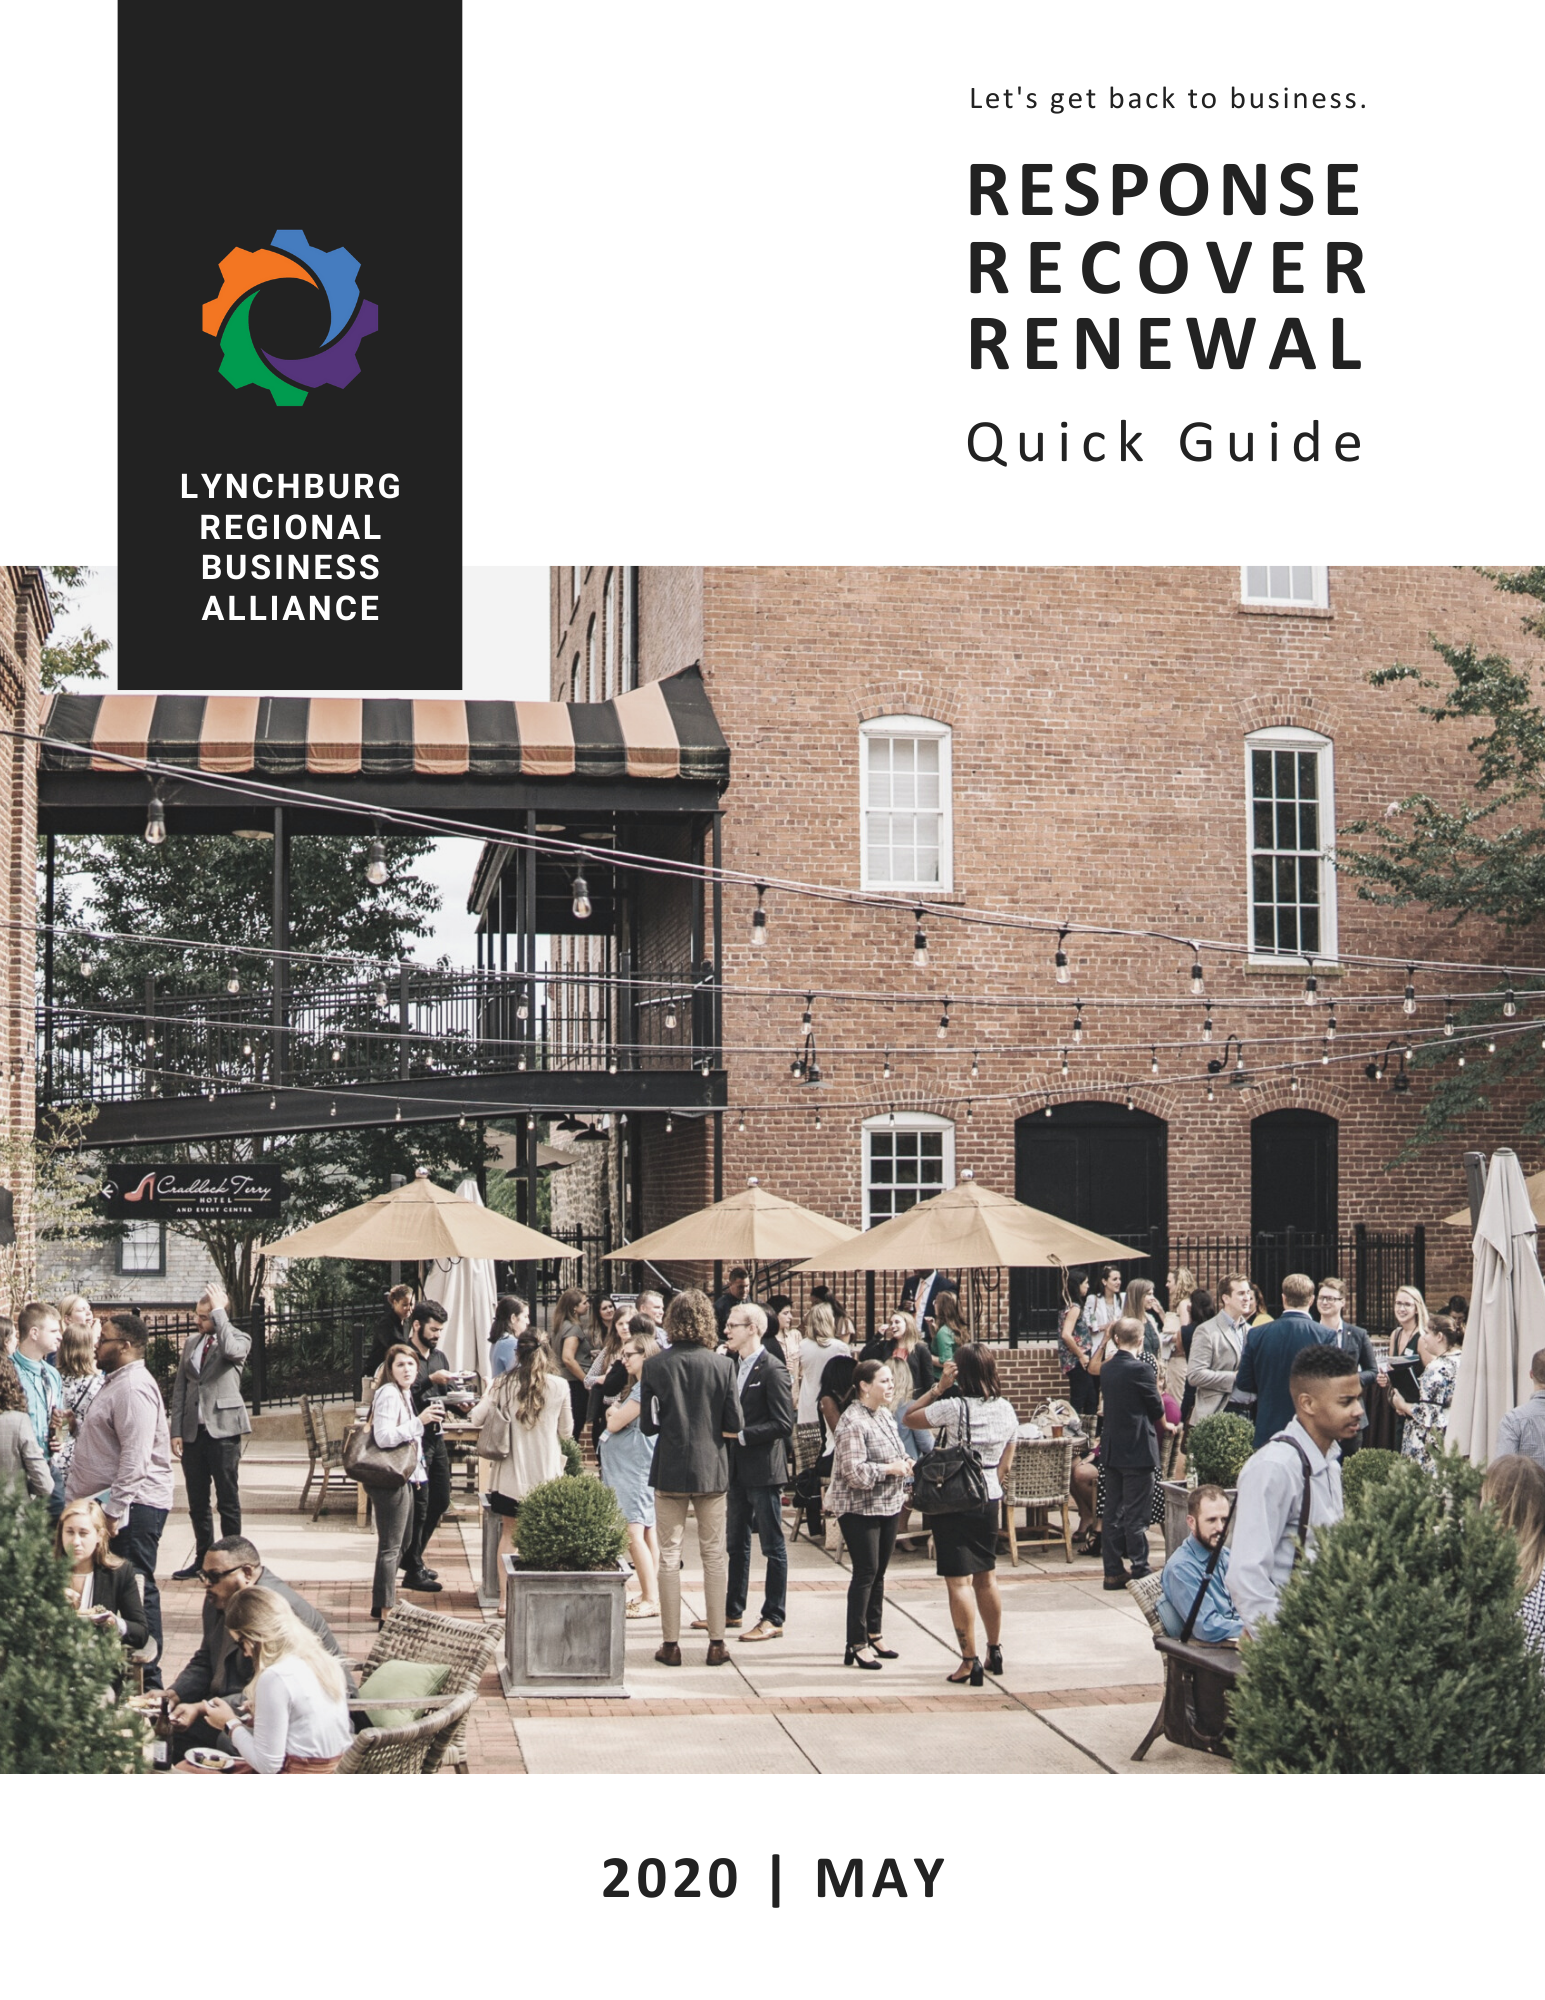 Response, Recover, Renewal Quick Guide